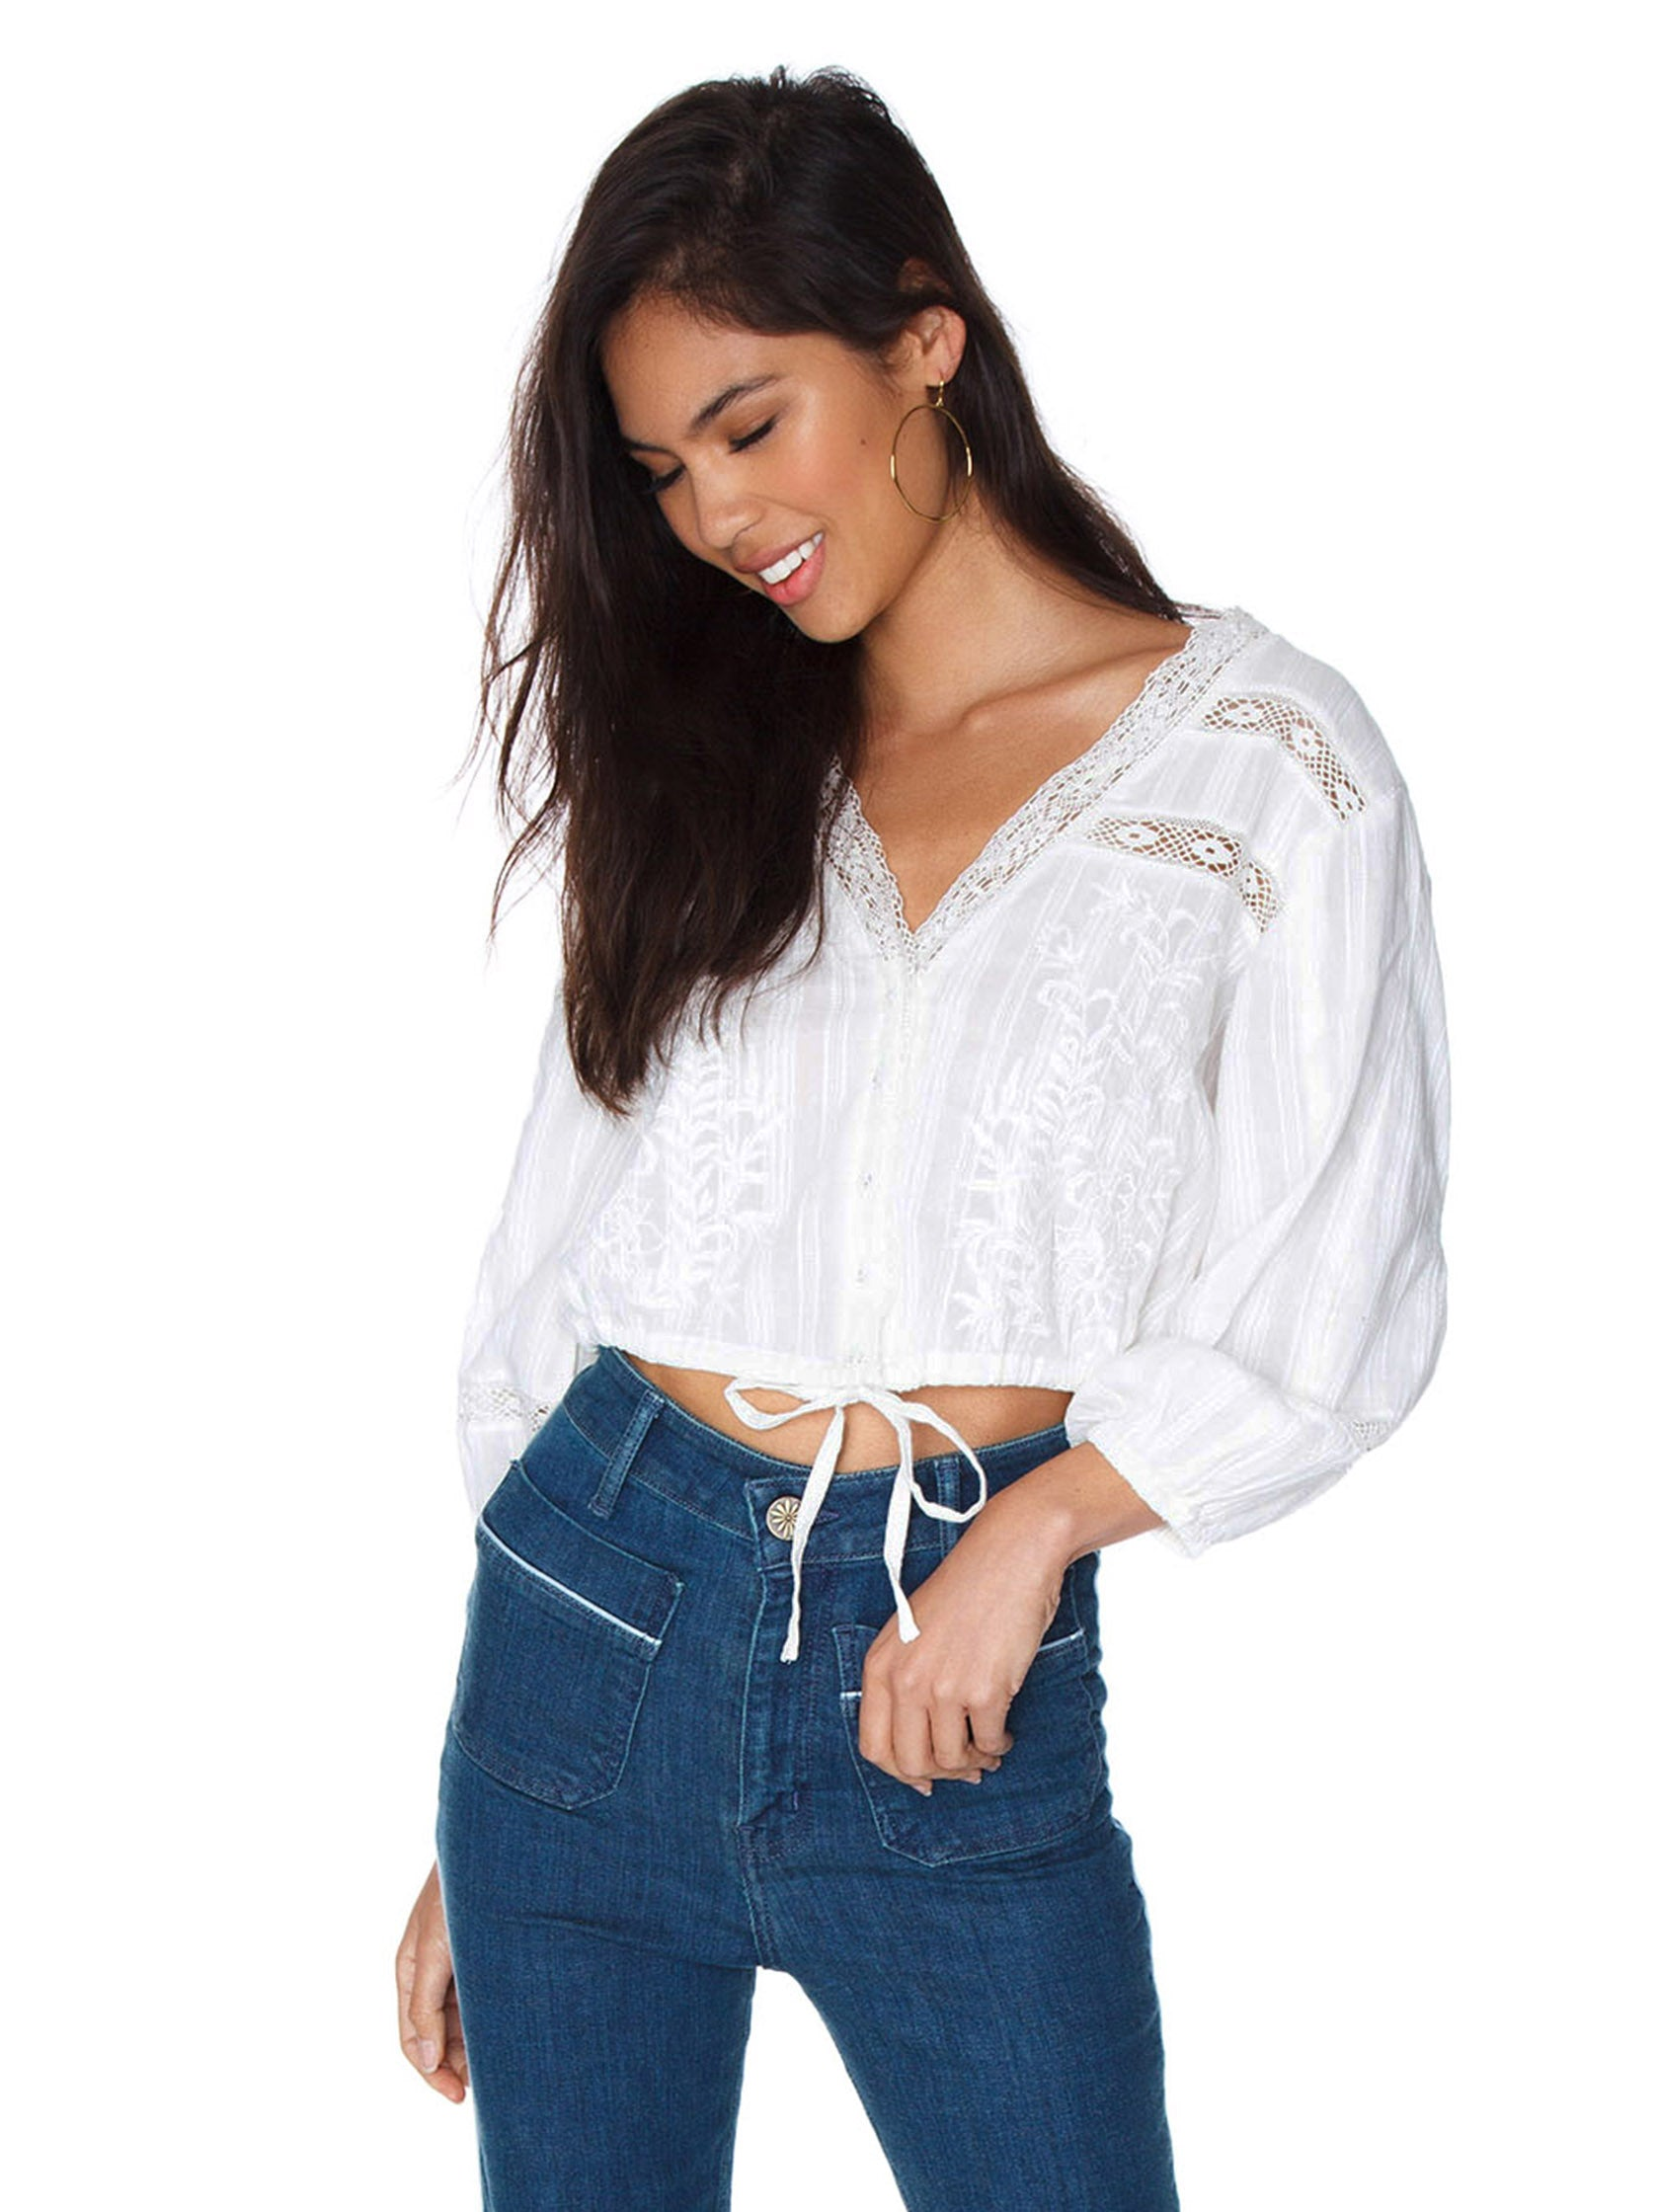 66c28863a7 Girl outfit in a top rental from Free People called Follow Your Heart Top